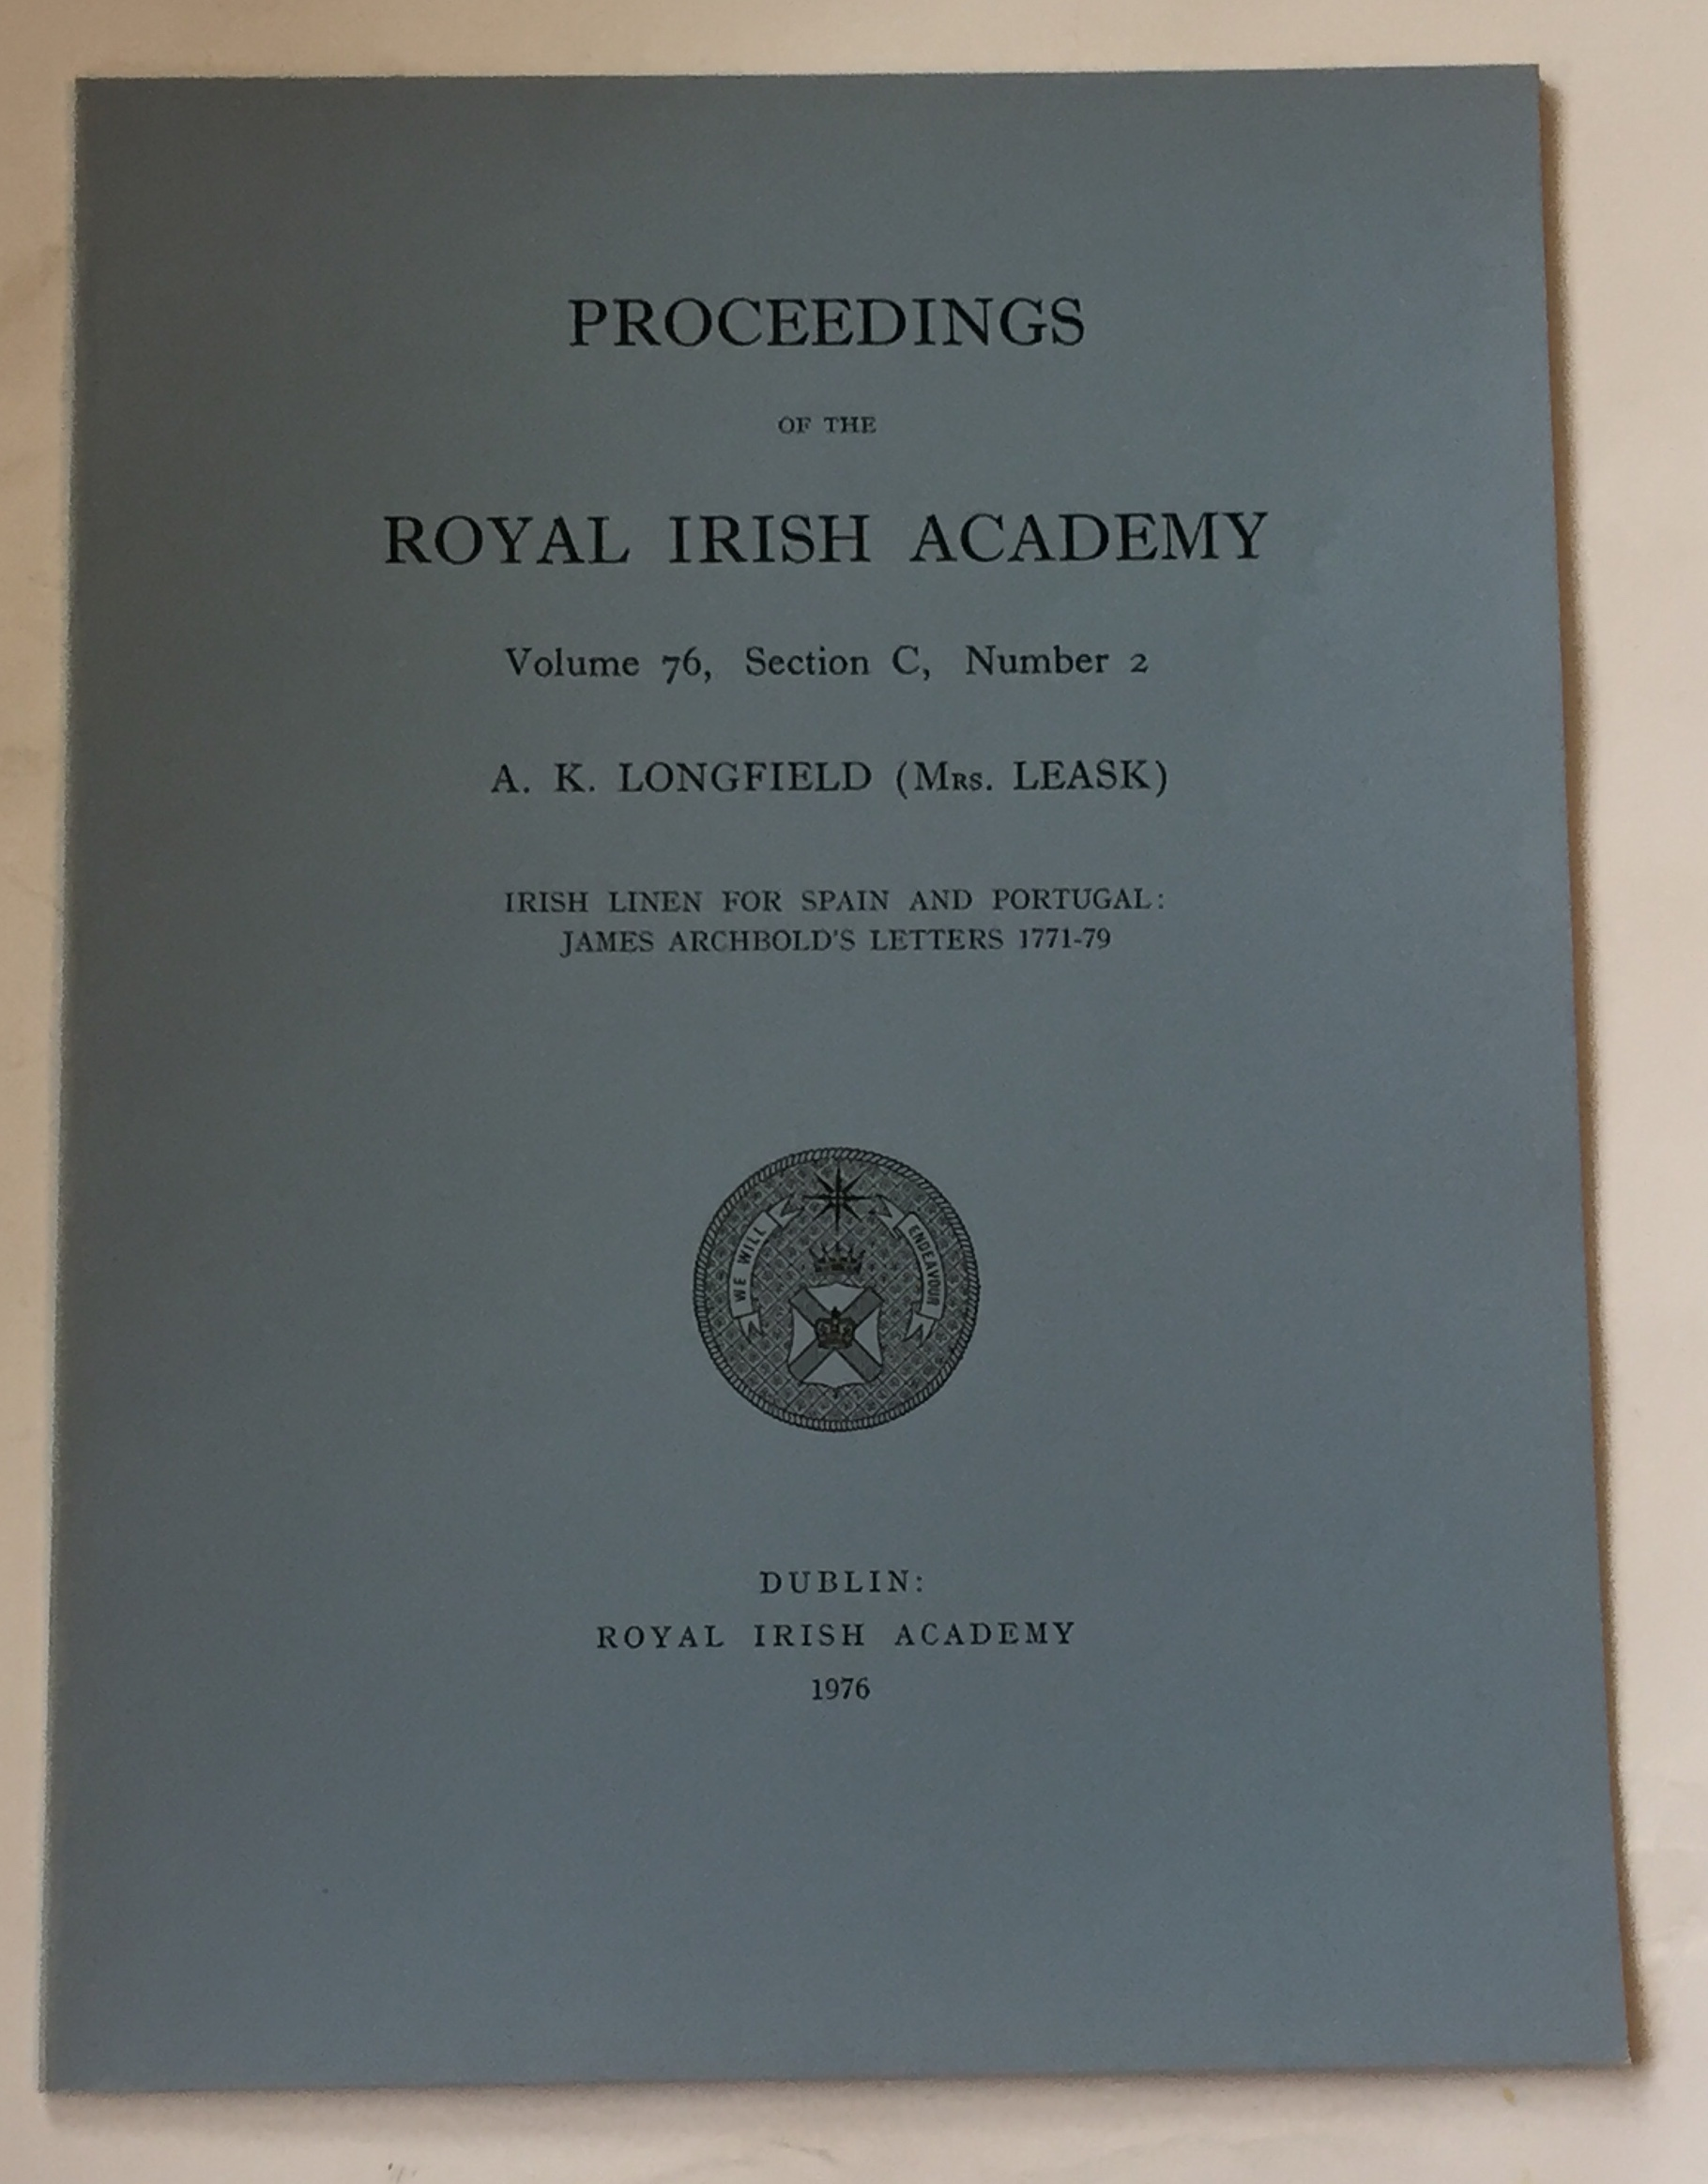 Image for Irish lien for spain and portugal: James Archbold's letters 1771-79 :Proceedings of the Royal Irish Academy, Volume 76, Section C, No. 2